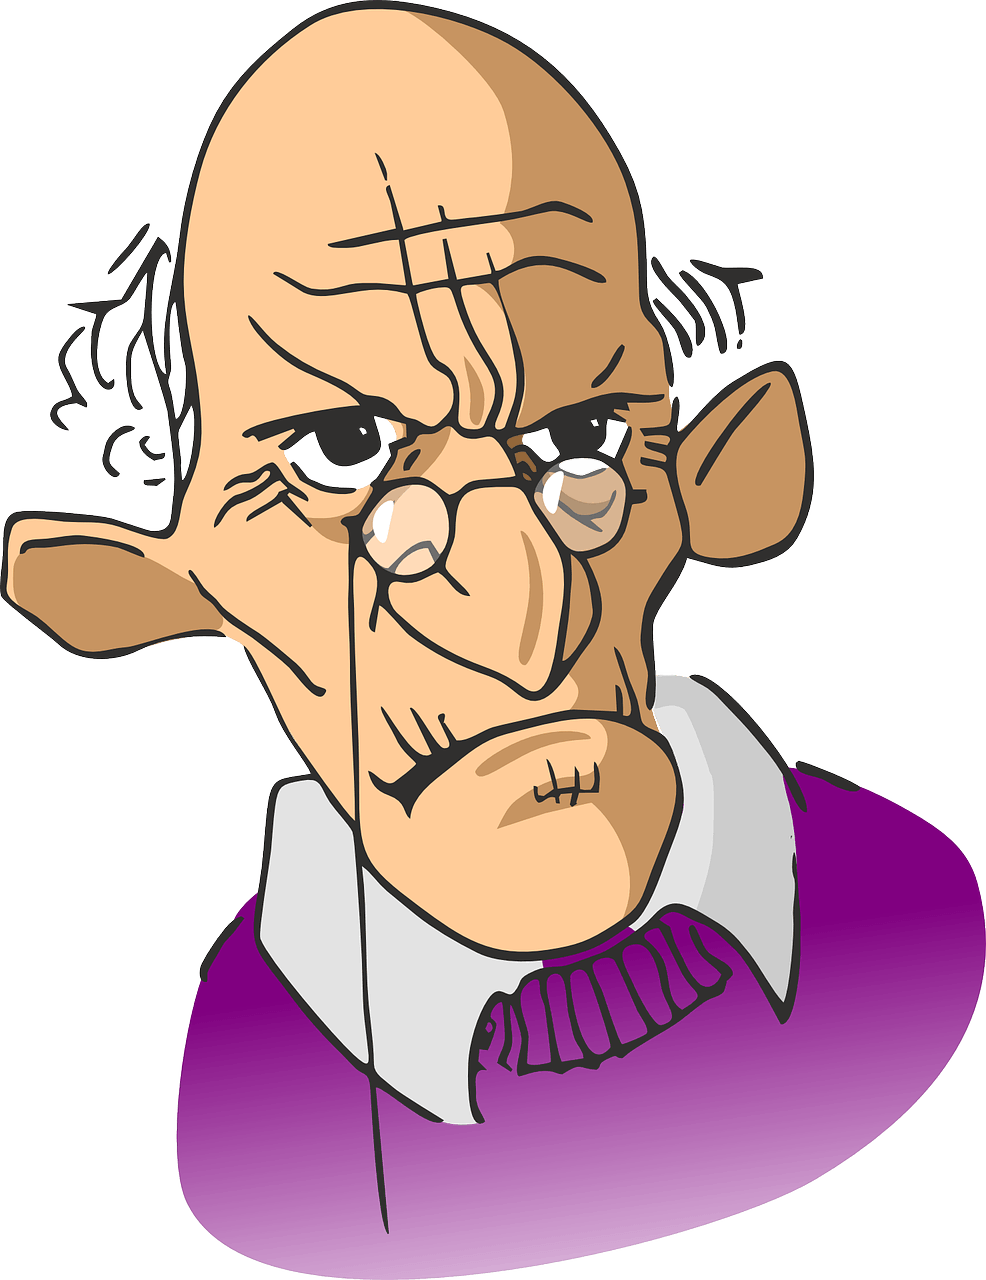 Confused clipart man. Old retired person pencil